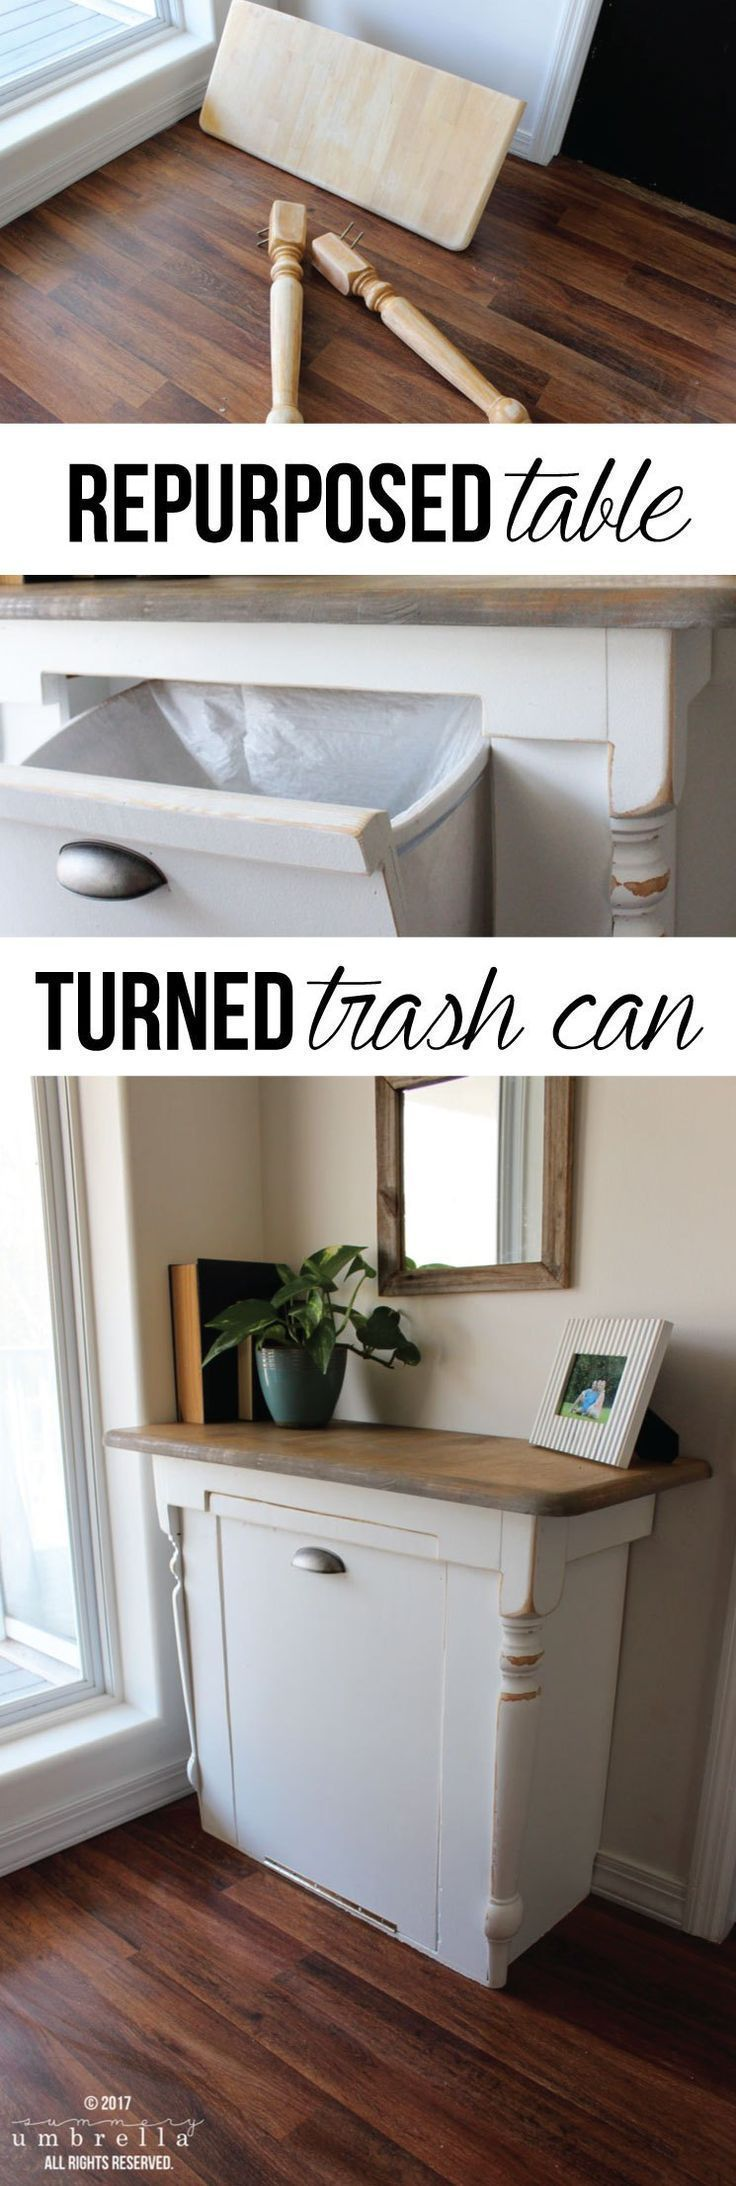 Best 25+ Victorian kitchen trash cans ideas on Pinterest ...